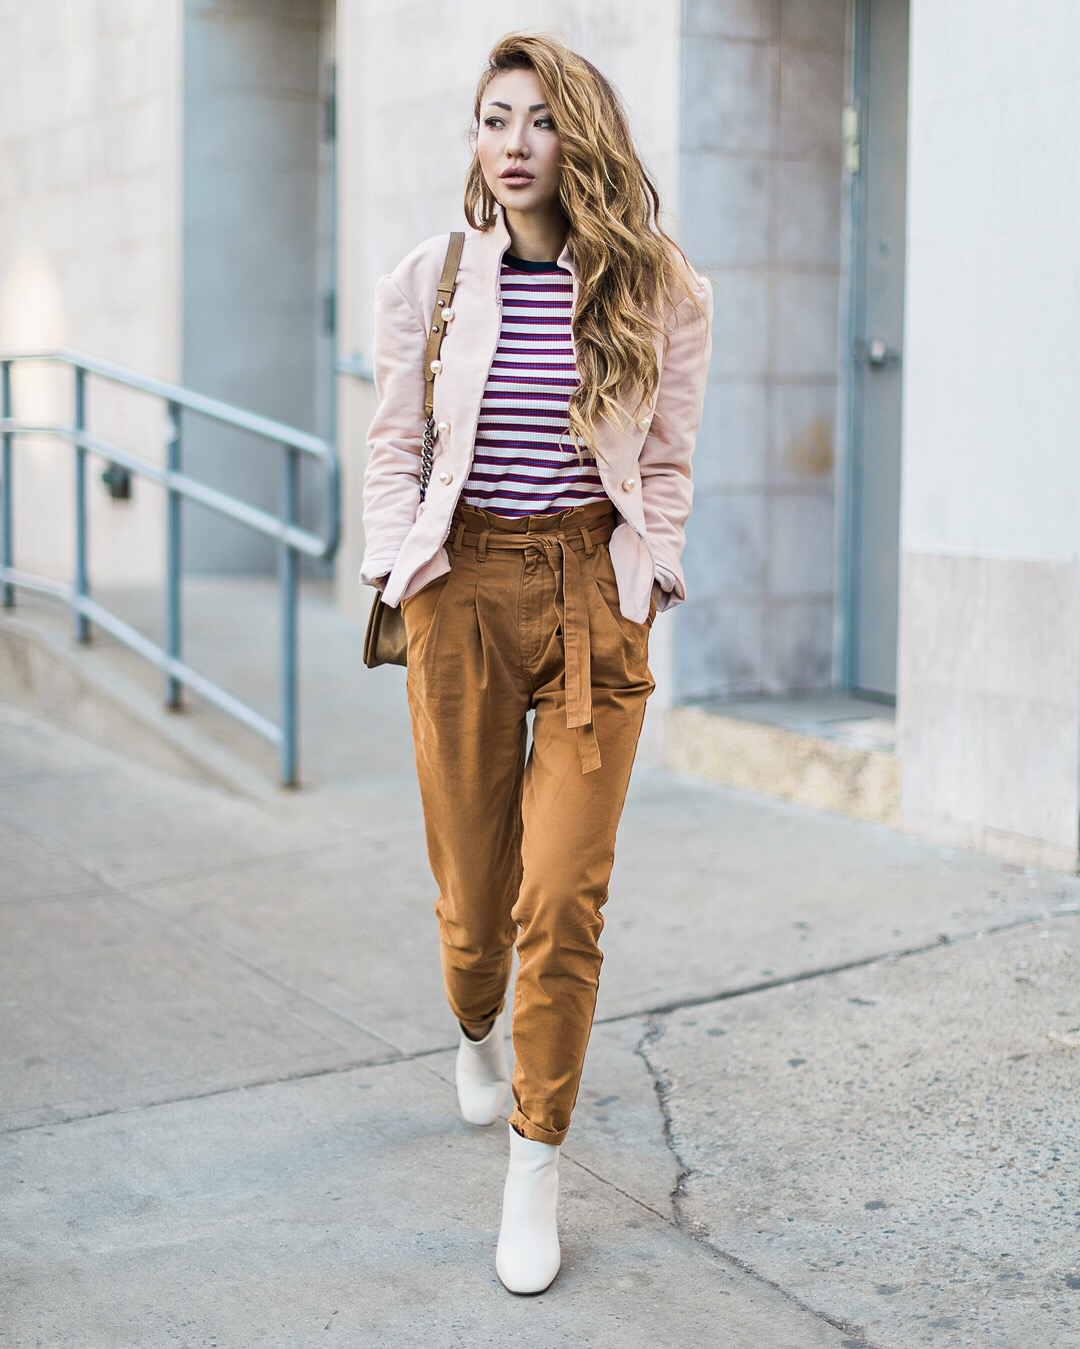 Thanksgiving Outfit Ideas - Brown Trousers with White Boots // NotJessFashion.com